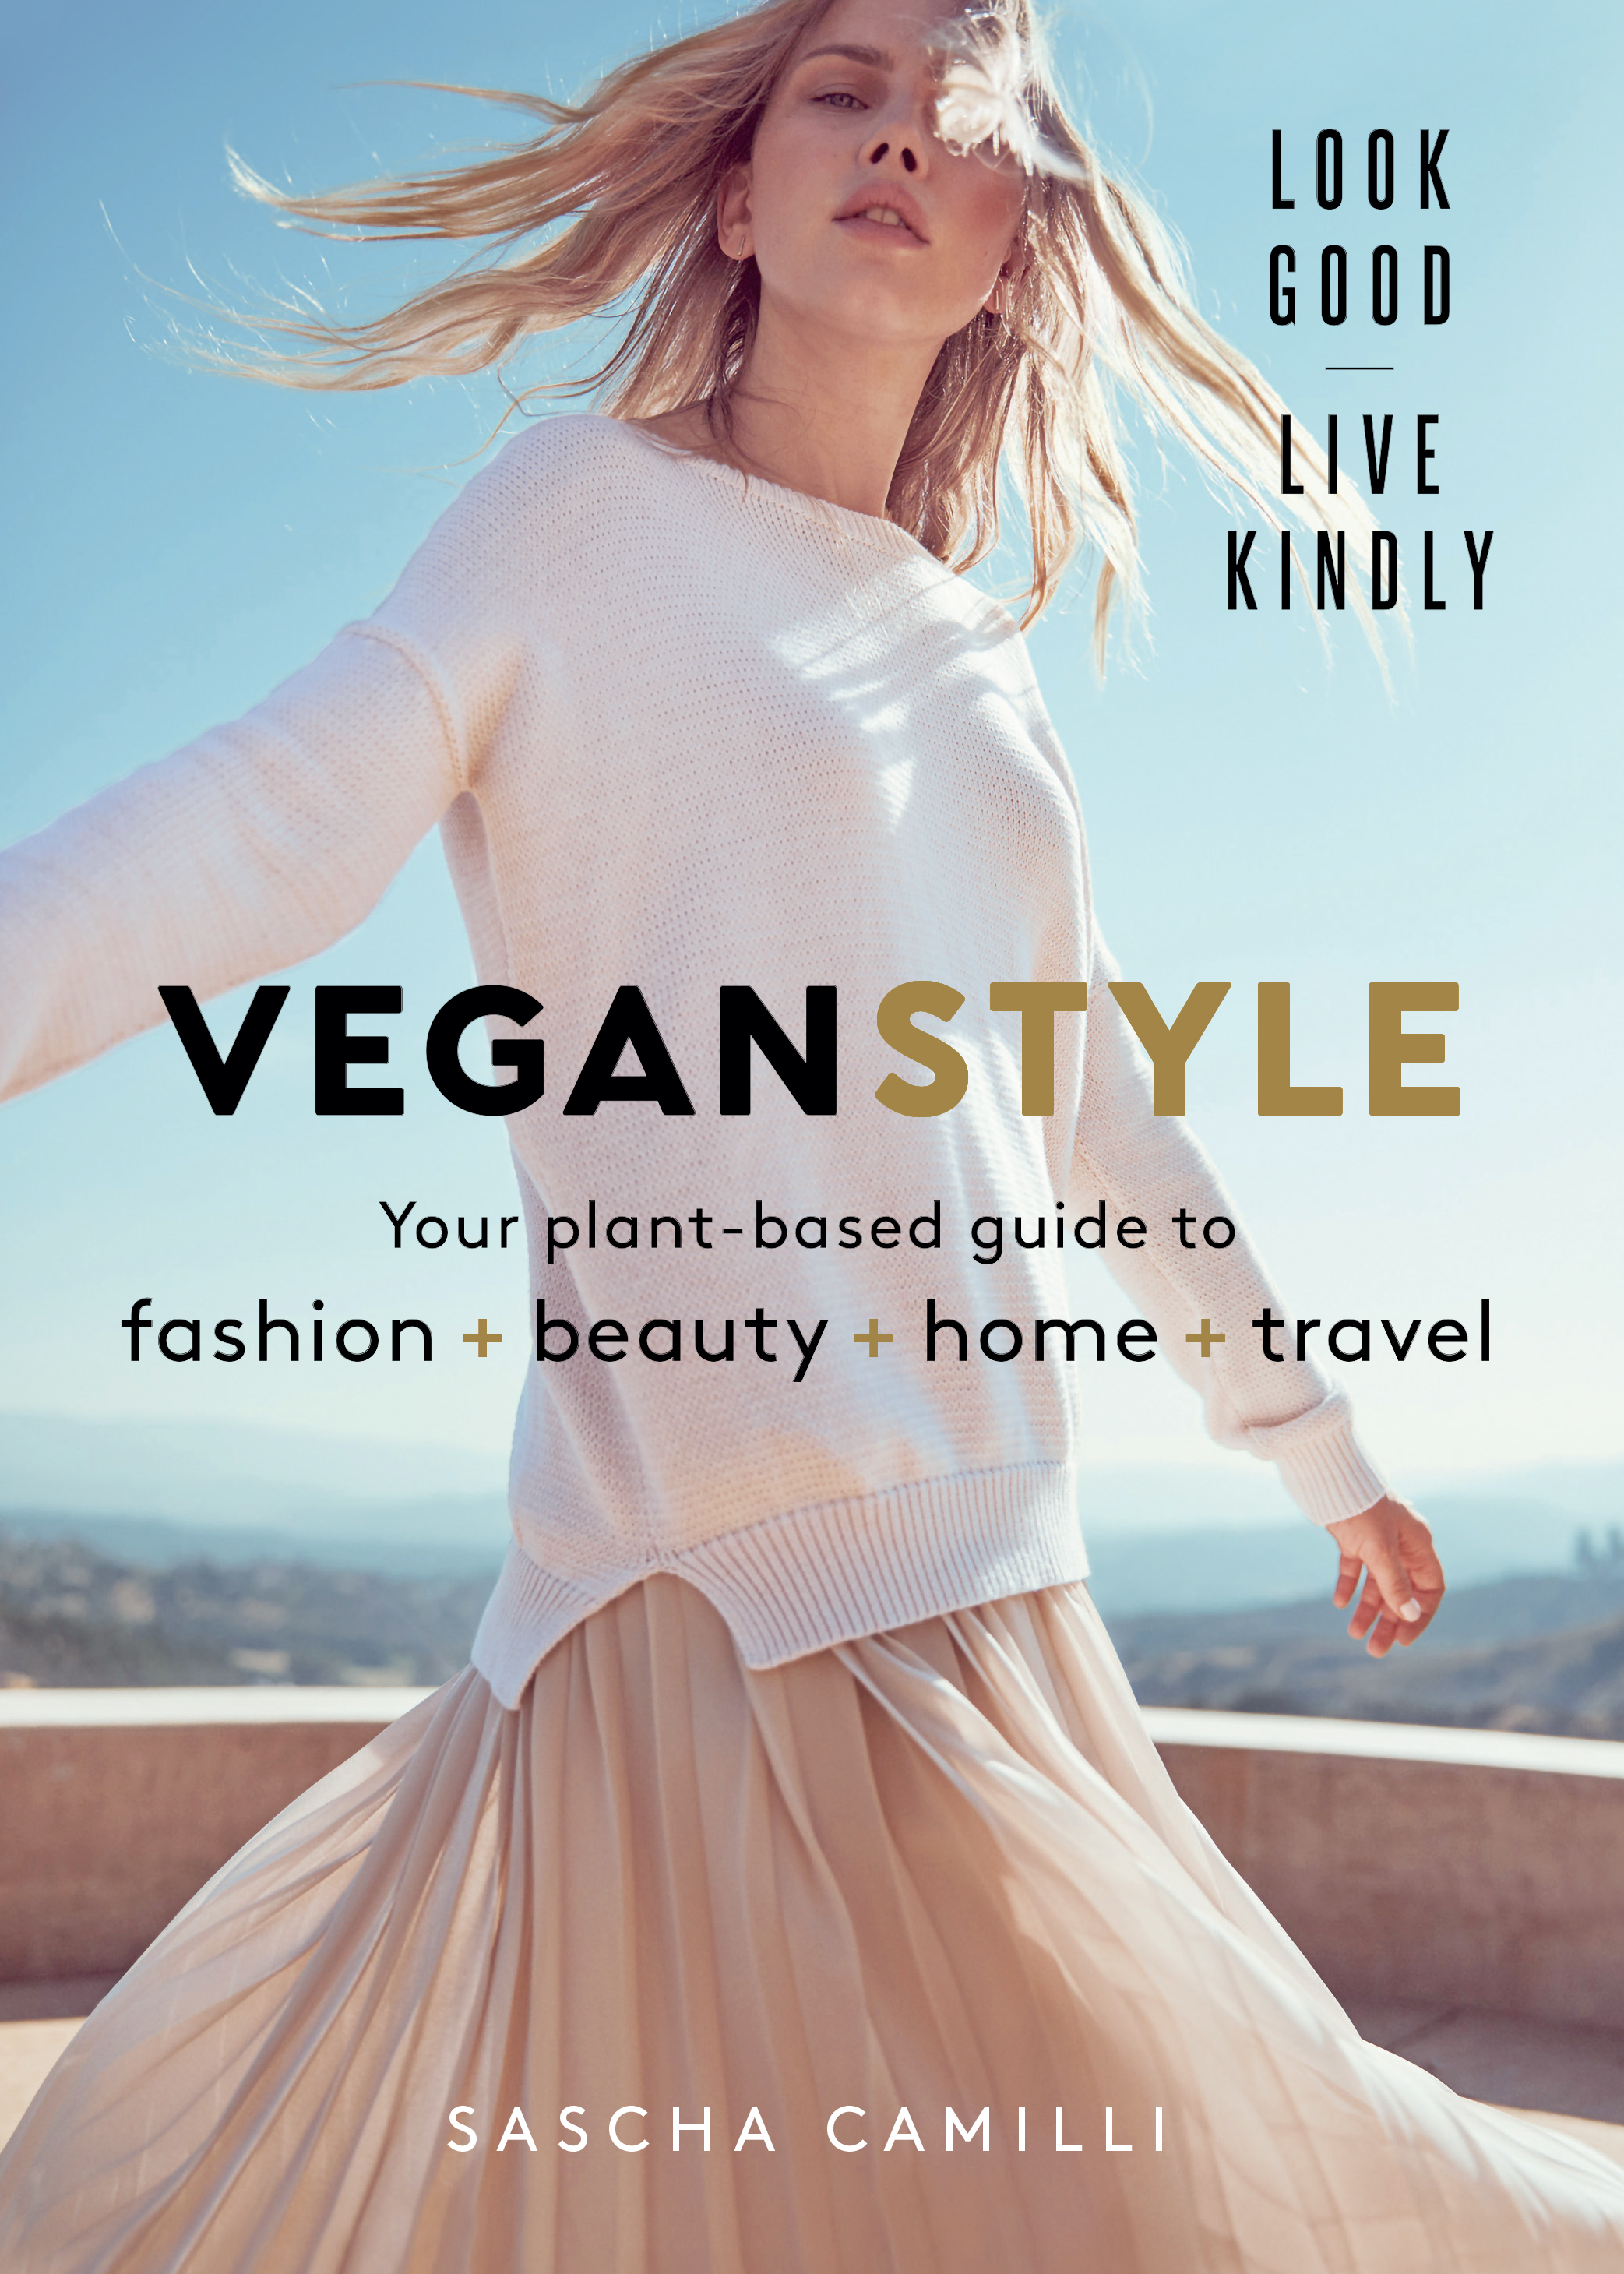 Vegan Style is available now - This is an edited extract from Vegan Style by Sascha Camilli. Murdoch Books RRP $35.00